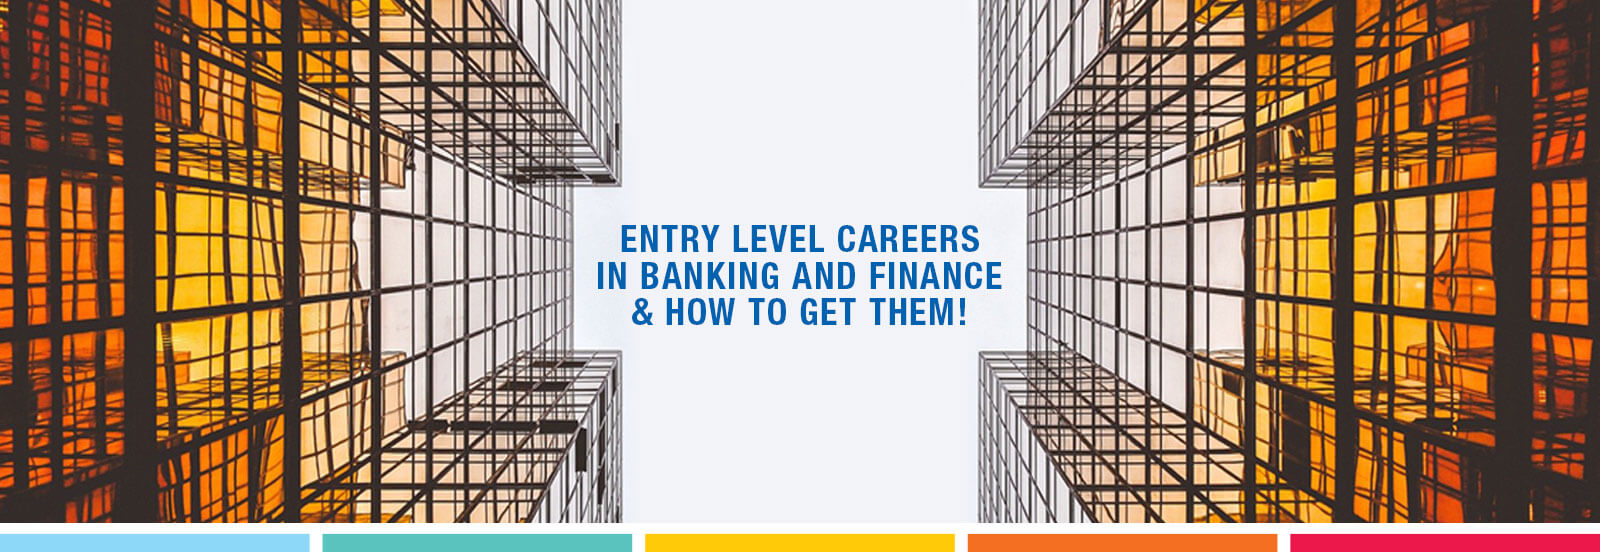 Entry Level Careers in Banking and Finance & How to Get Them!